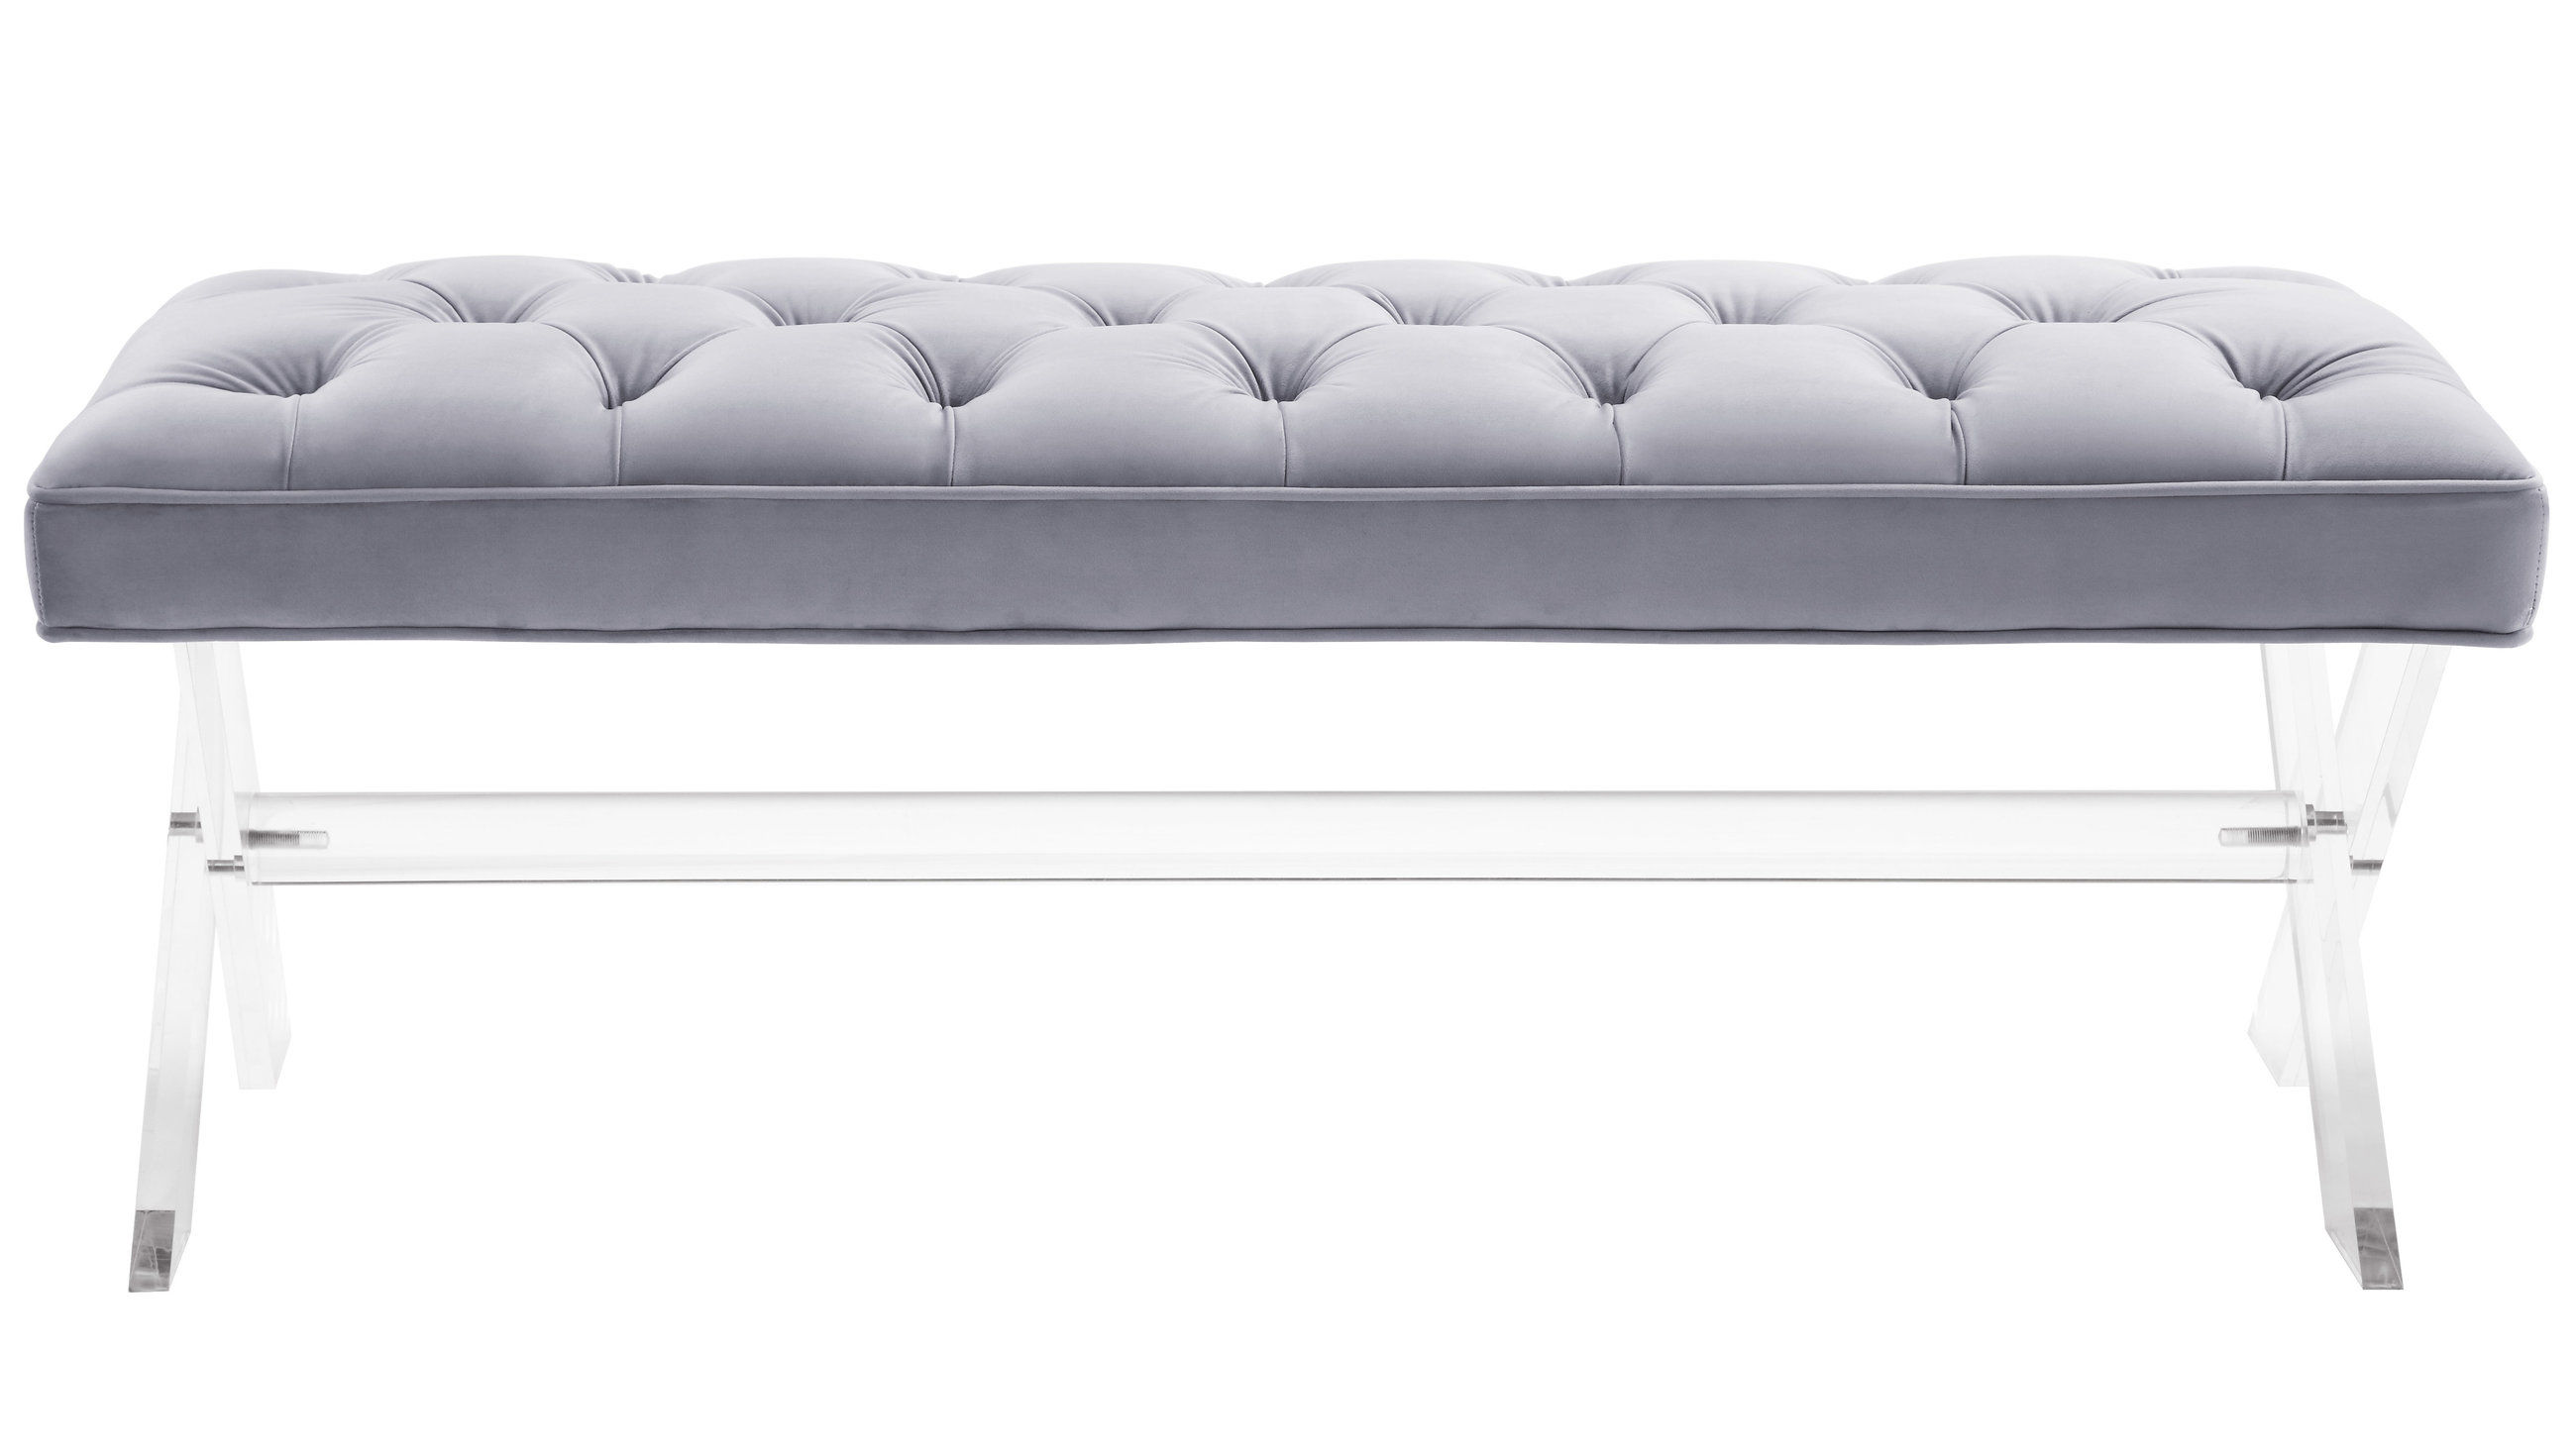 Fine Tov Furniture Claira Grey Lucite Bench Creativecarmelina Interior Chair Design Creativecarmelinacom